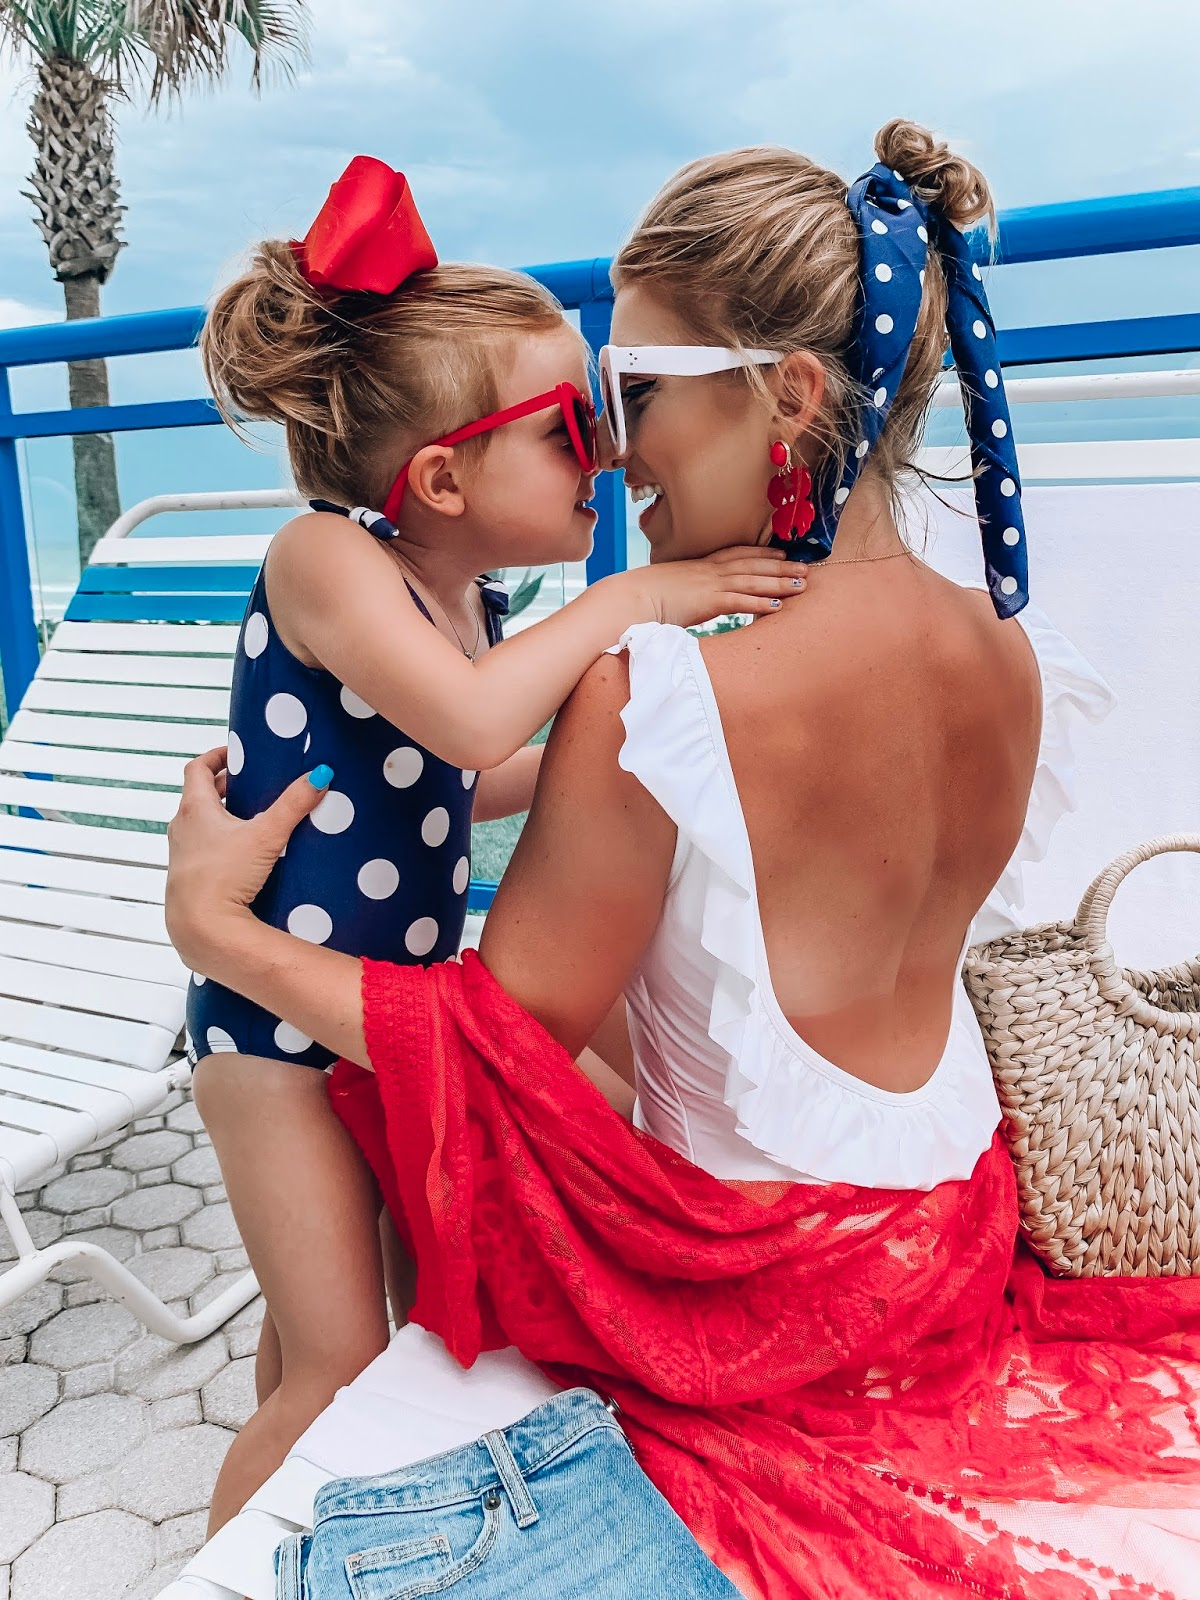 $40 Target Ruffle Back Swimsuit: Patriotic Styling, Red, White & Blue/White Polka Dots - Something Delightful